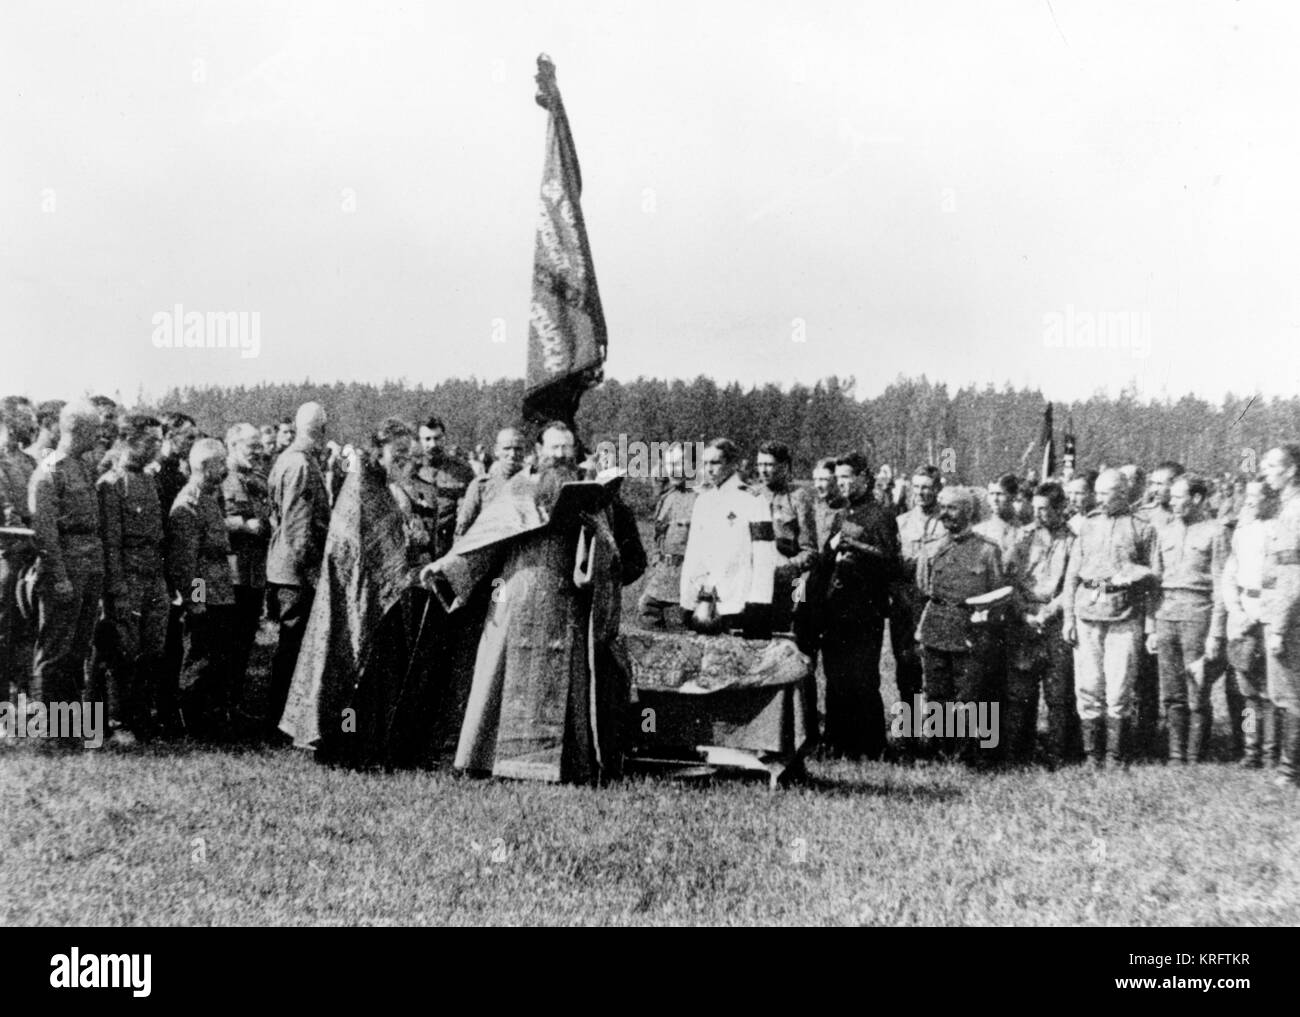 WW1 - Russian Troops blessed by Russian Orthodox Priest before offensive - June 1917     Date: 1917 - Stock Image